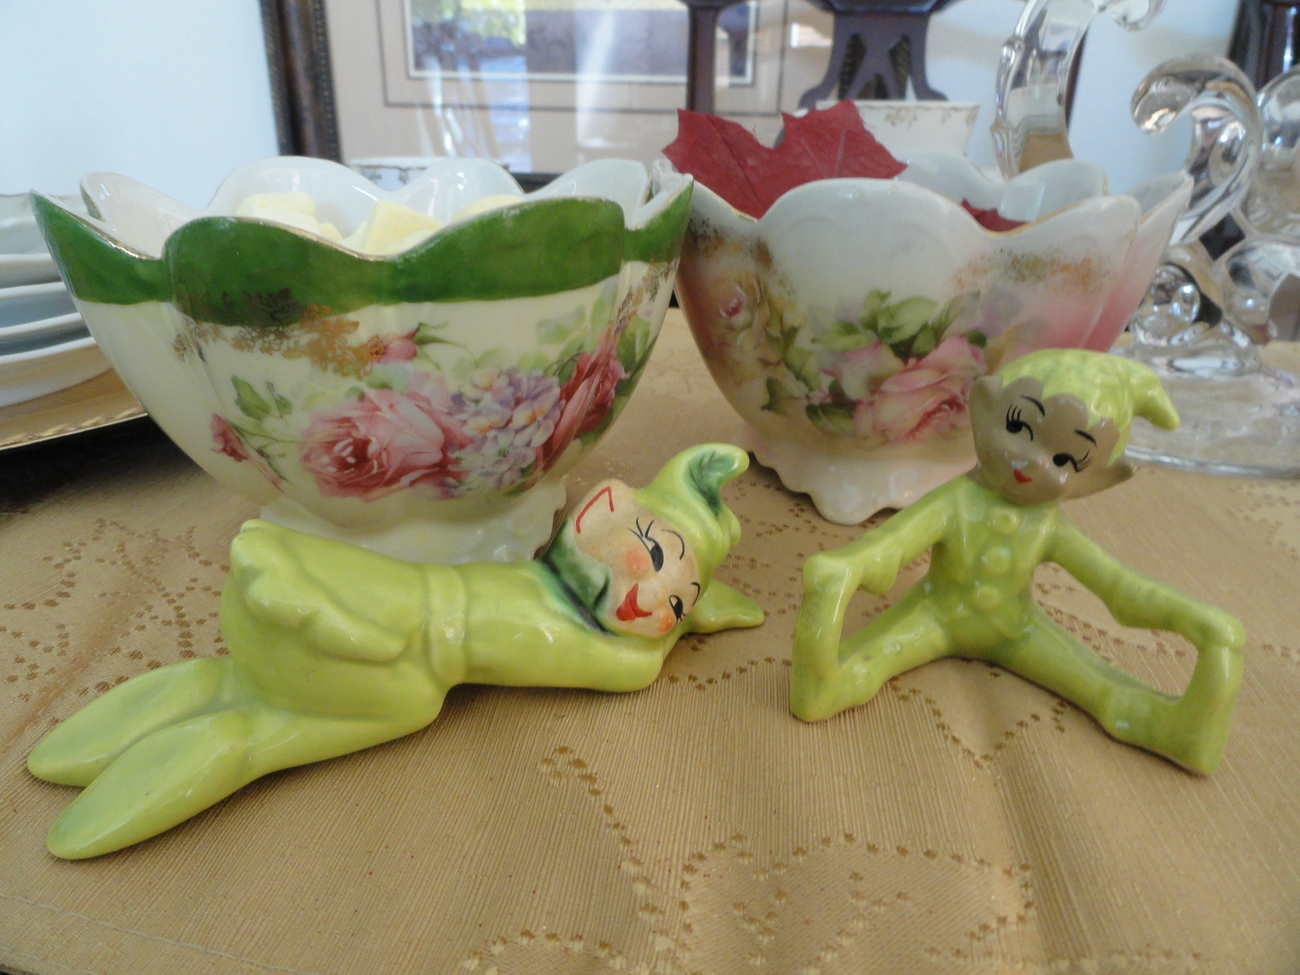 Pair of Lime Green Mid-Century Pixie Figurines - One Kippie, One Unmarked